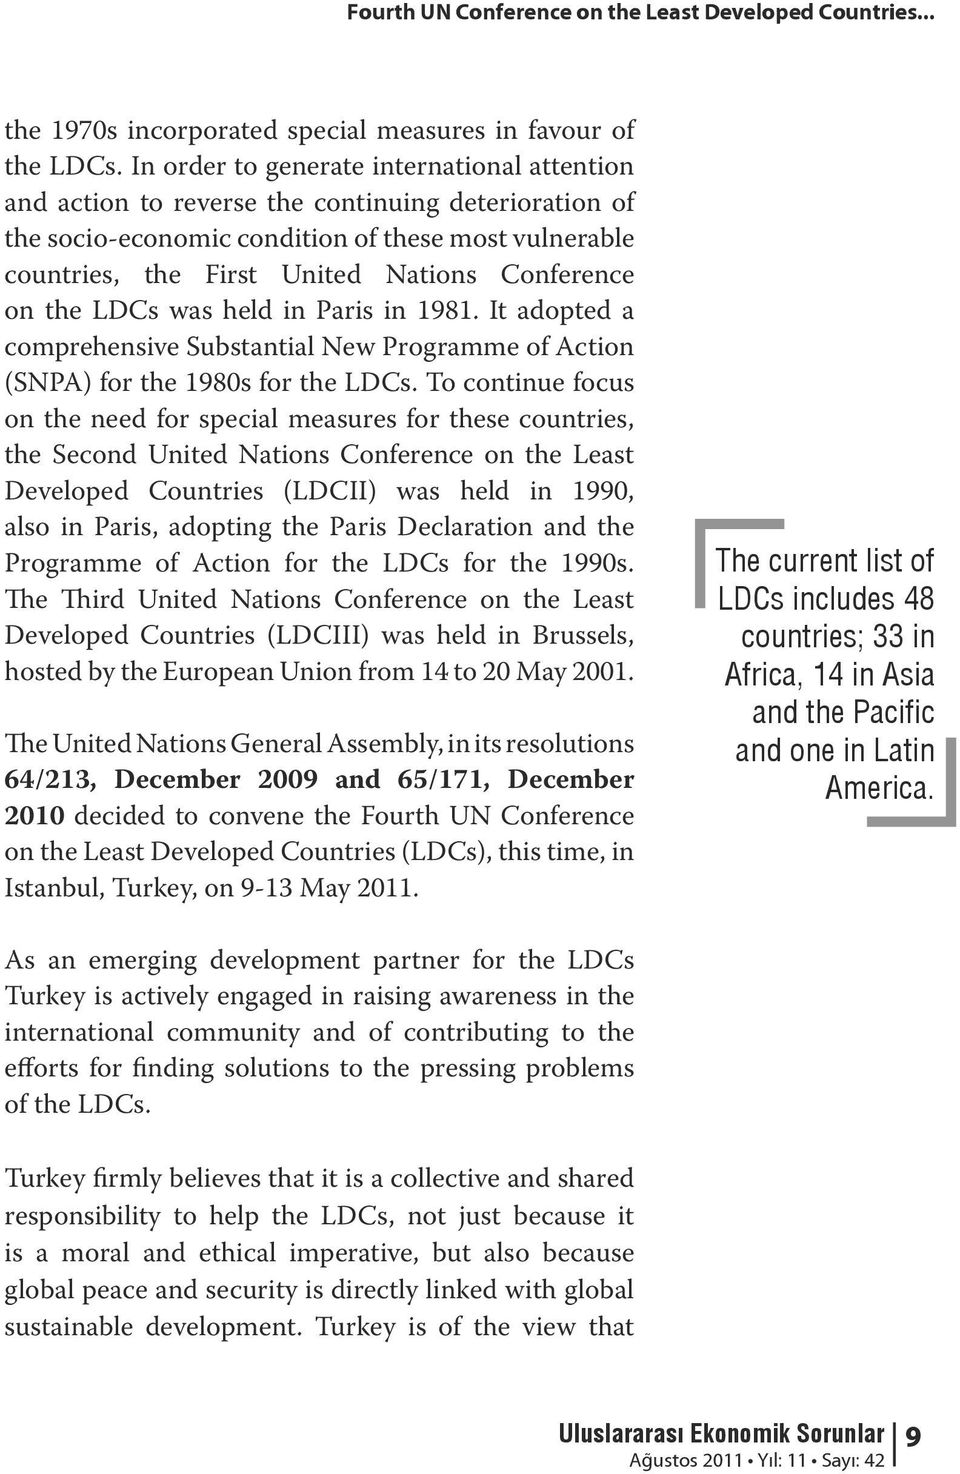 on the LDCs was held in Paris in 1981. It adopted a comprehensive Substantial New Programme of Action (SNPA) for the 1980s for the LDCs.